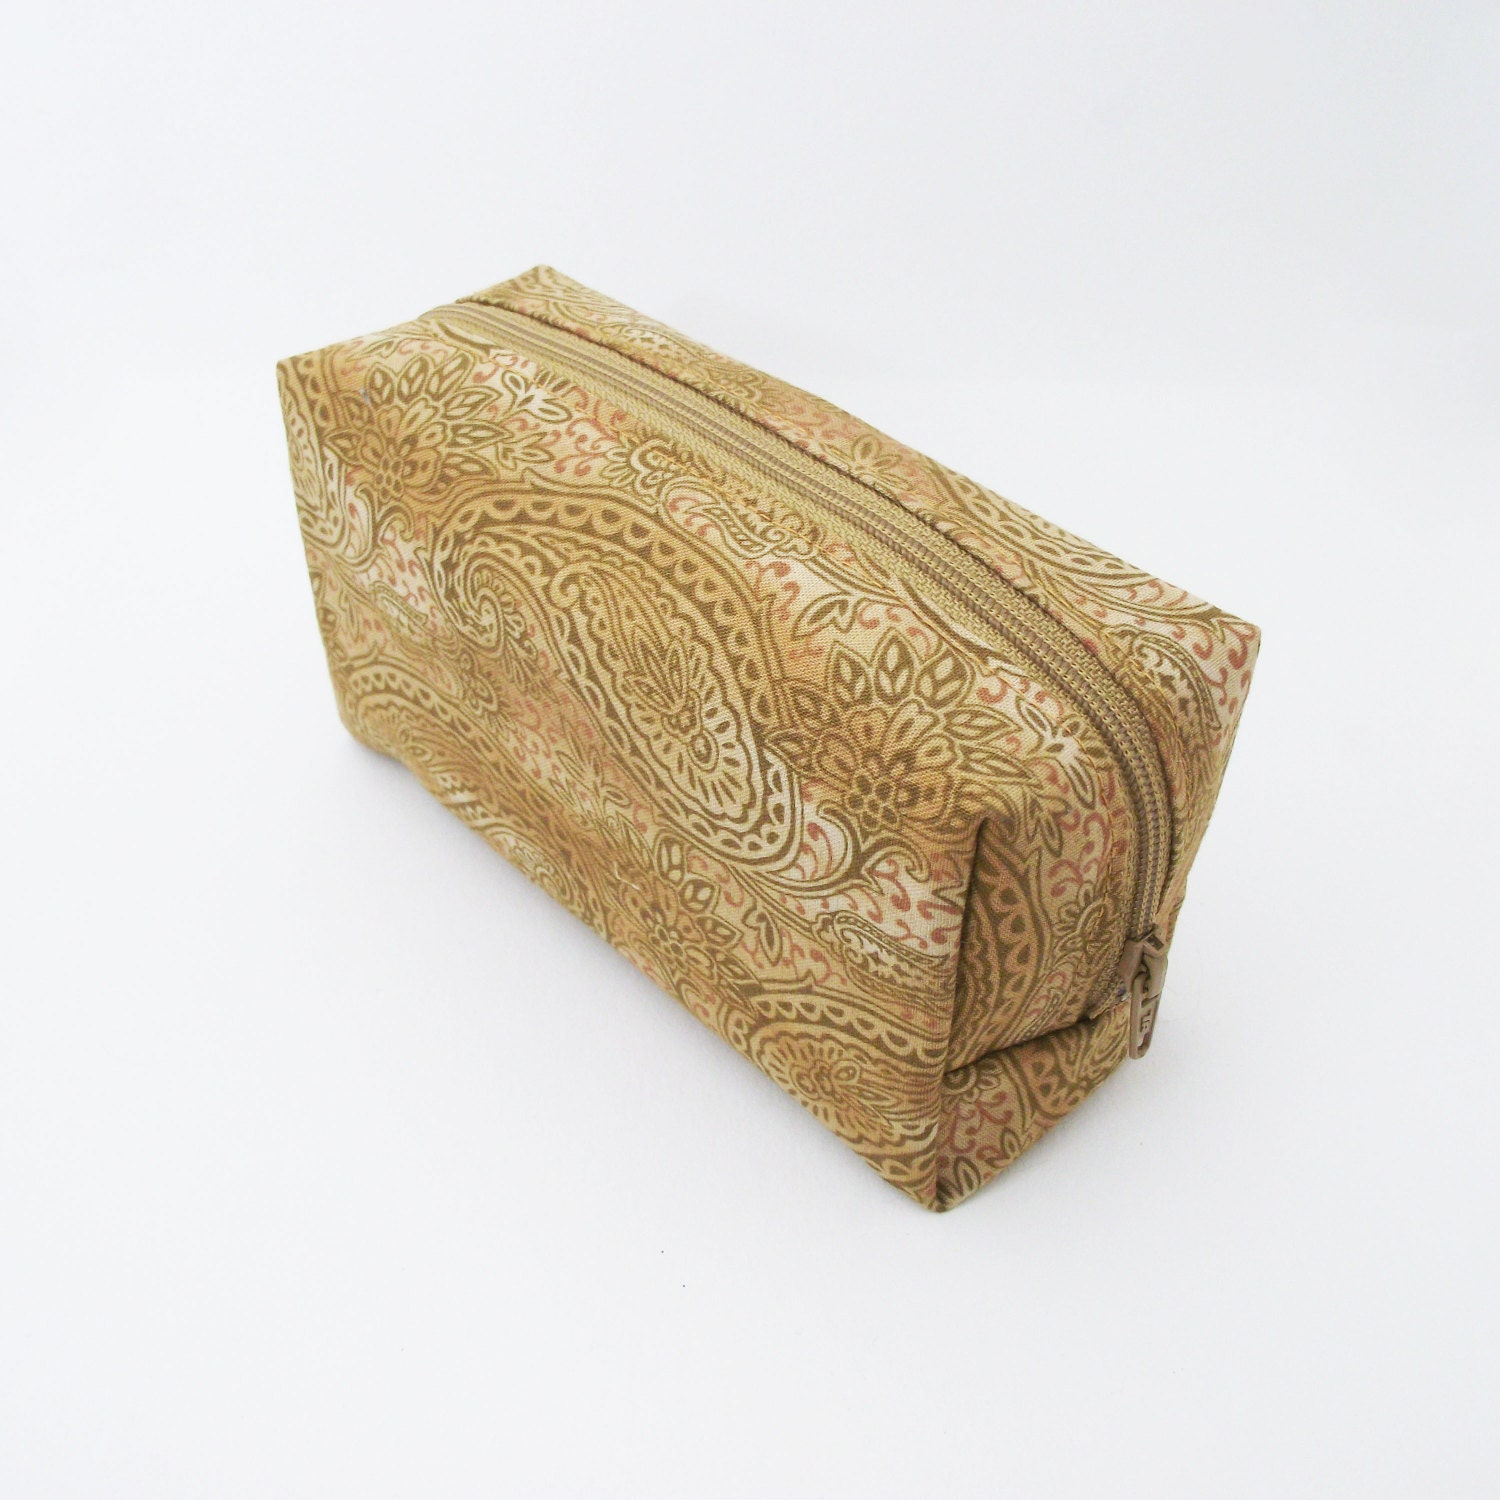 Cosmetic bag boxy style. Makeup storage zipper pouch. Golden yellow and mustard paisley print